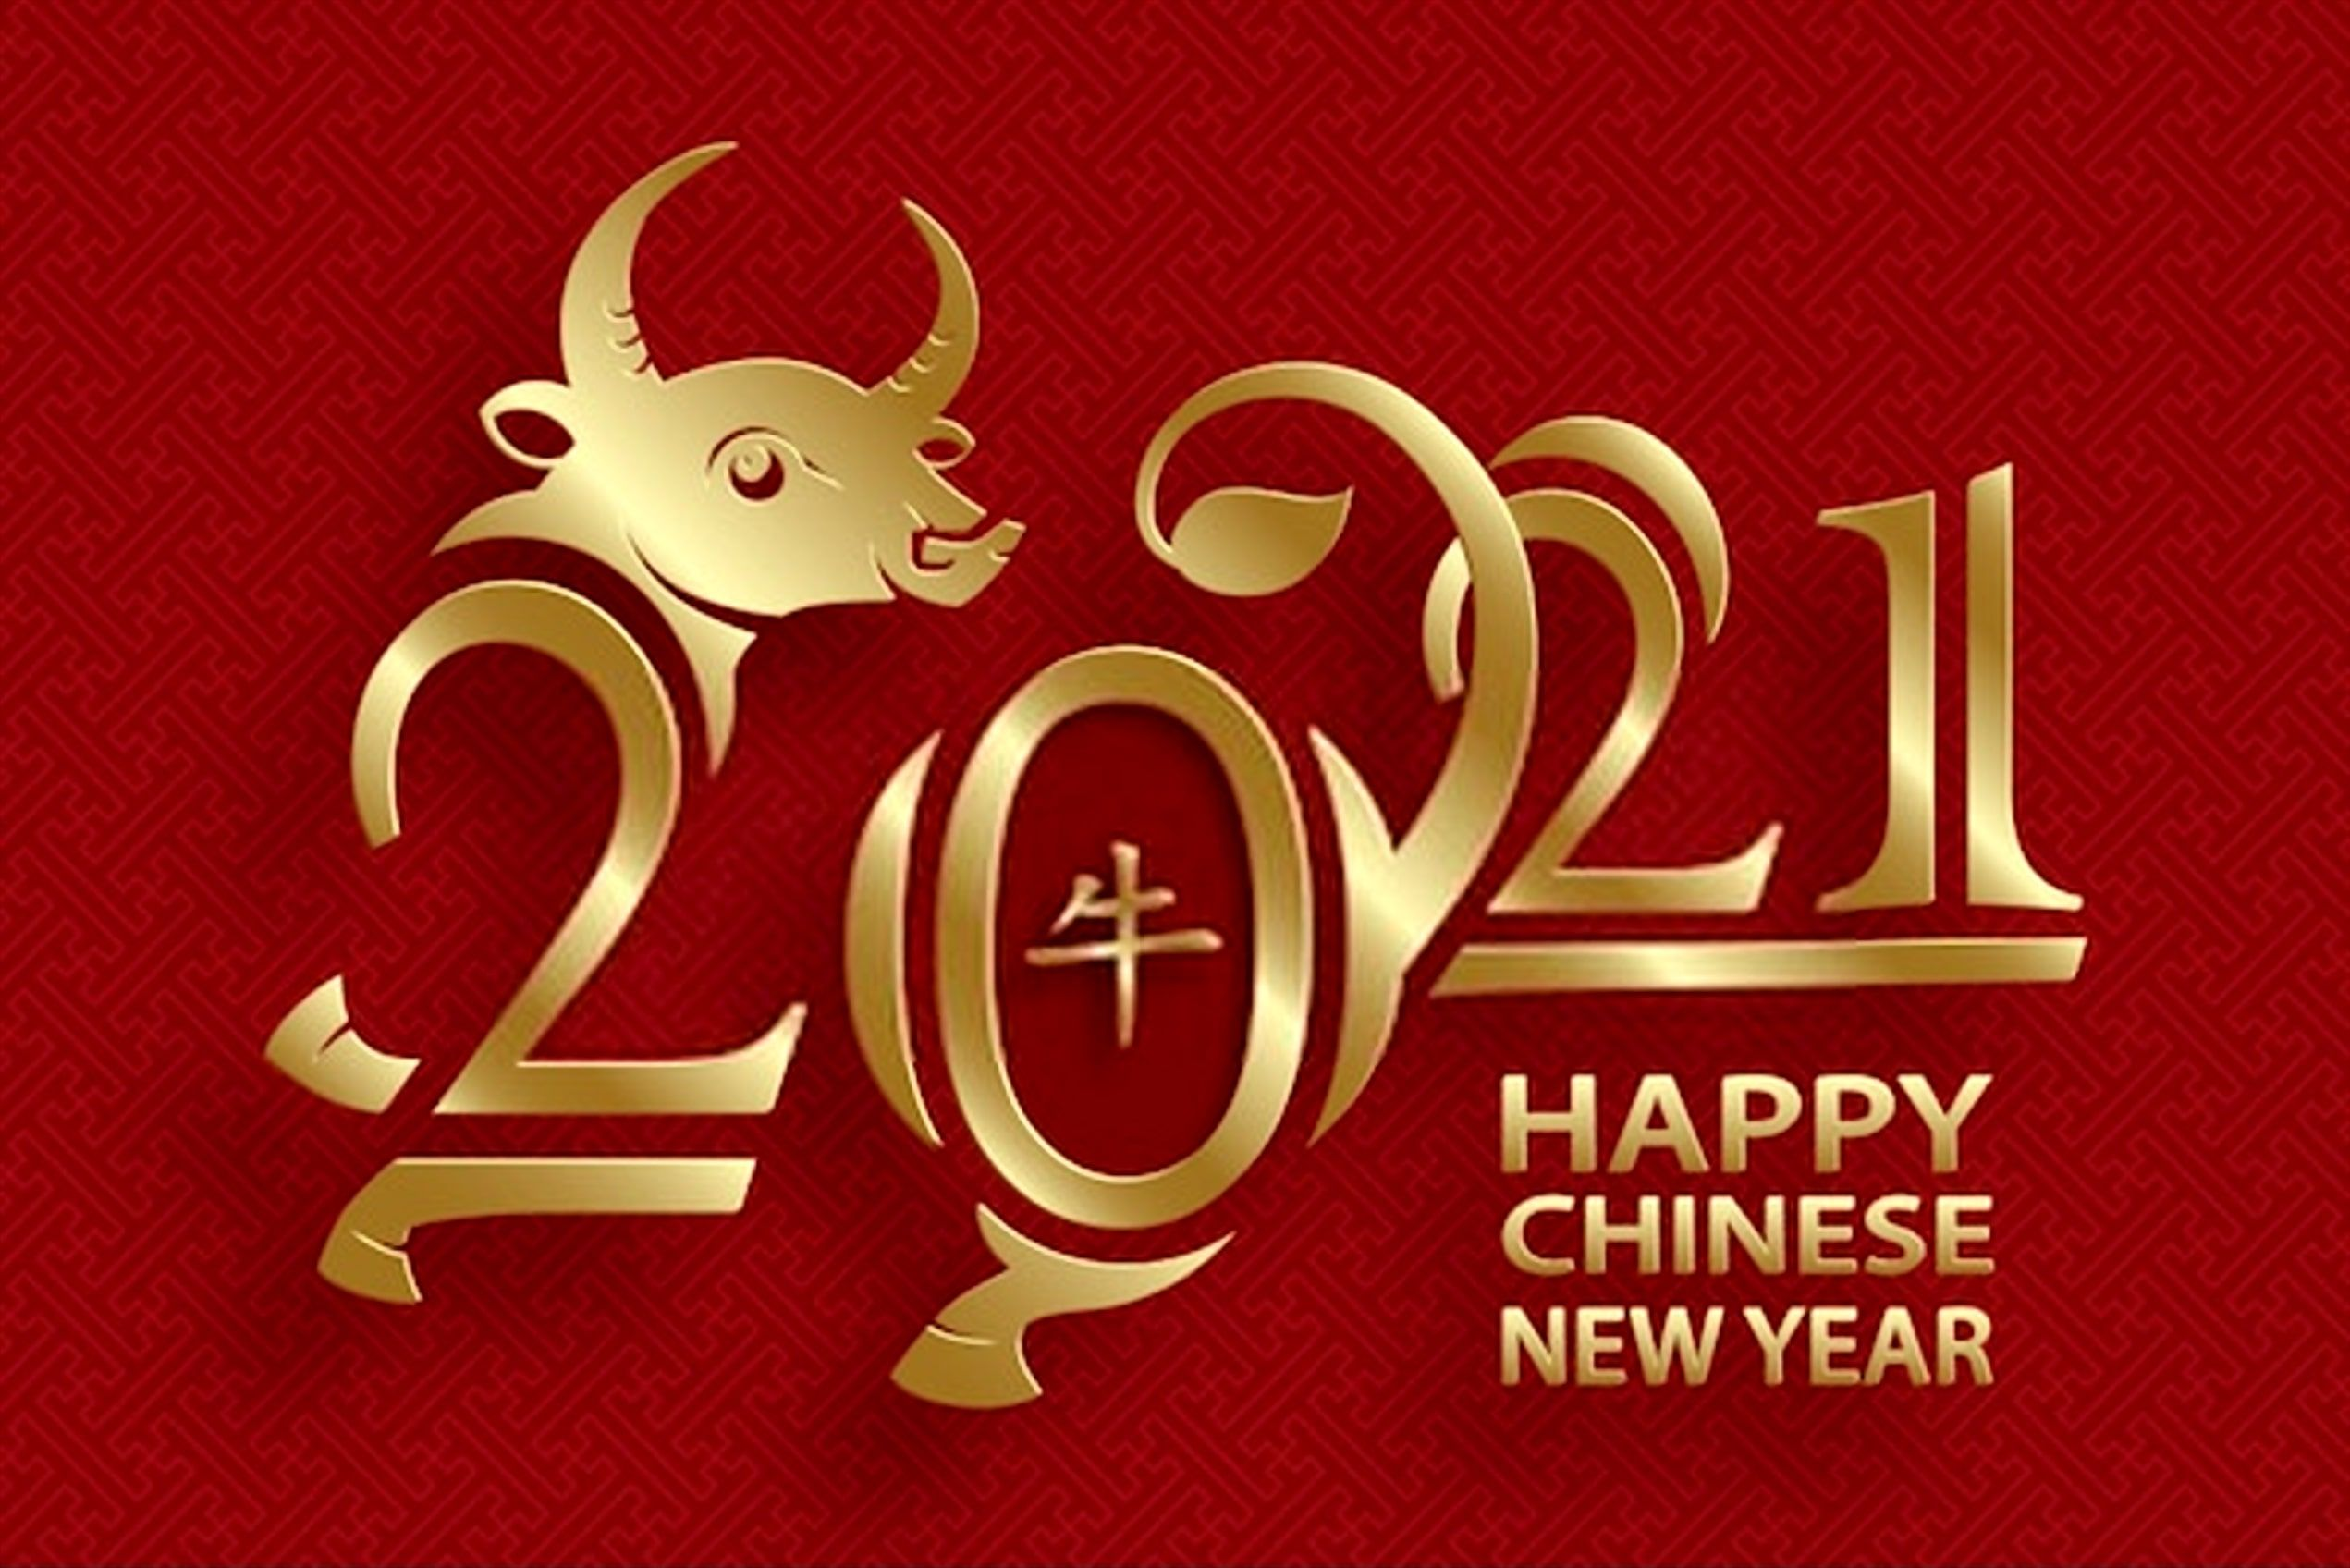 Happy Chinese New Year 2021 Images Wallpaper Chinese New Year Wishes Chinese New Year Card Happy Chinese New Year 2021